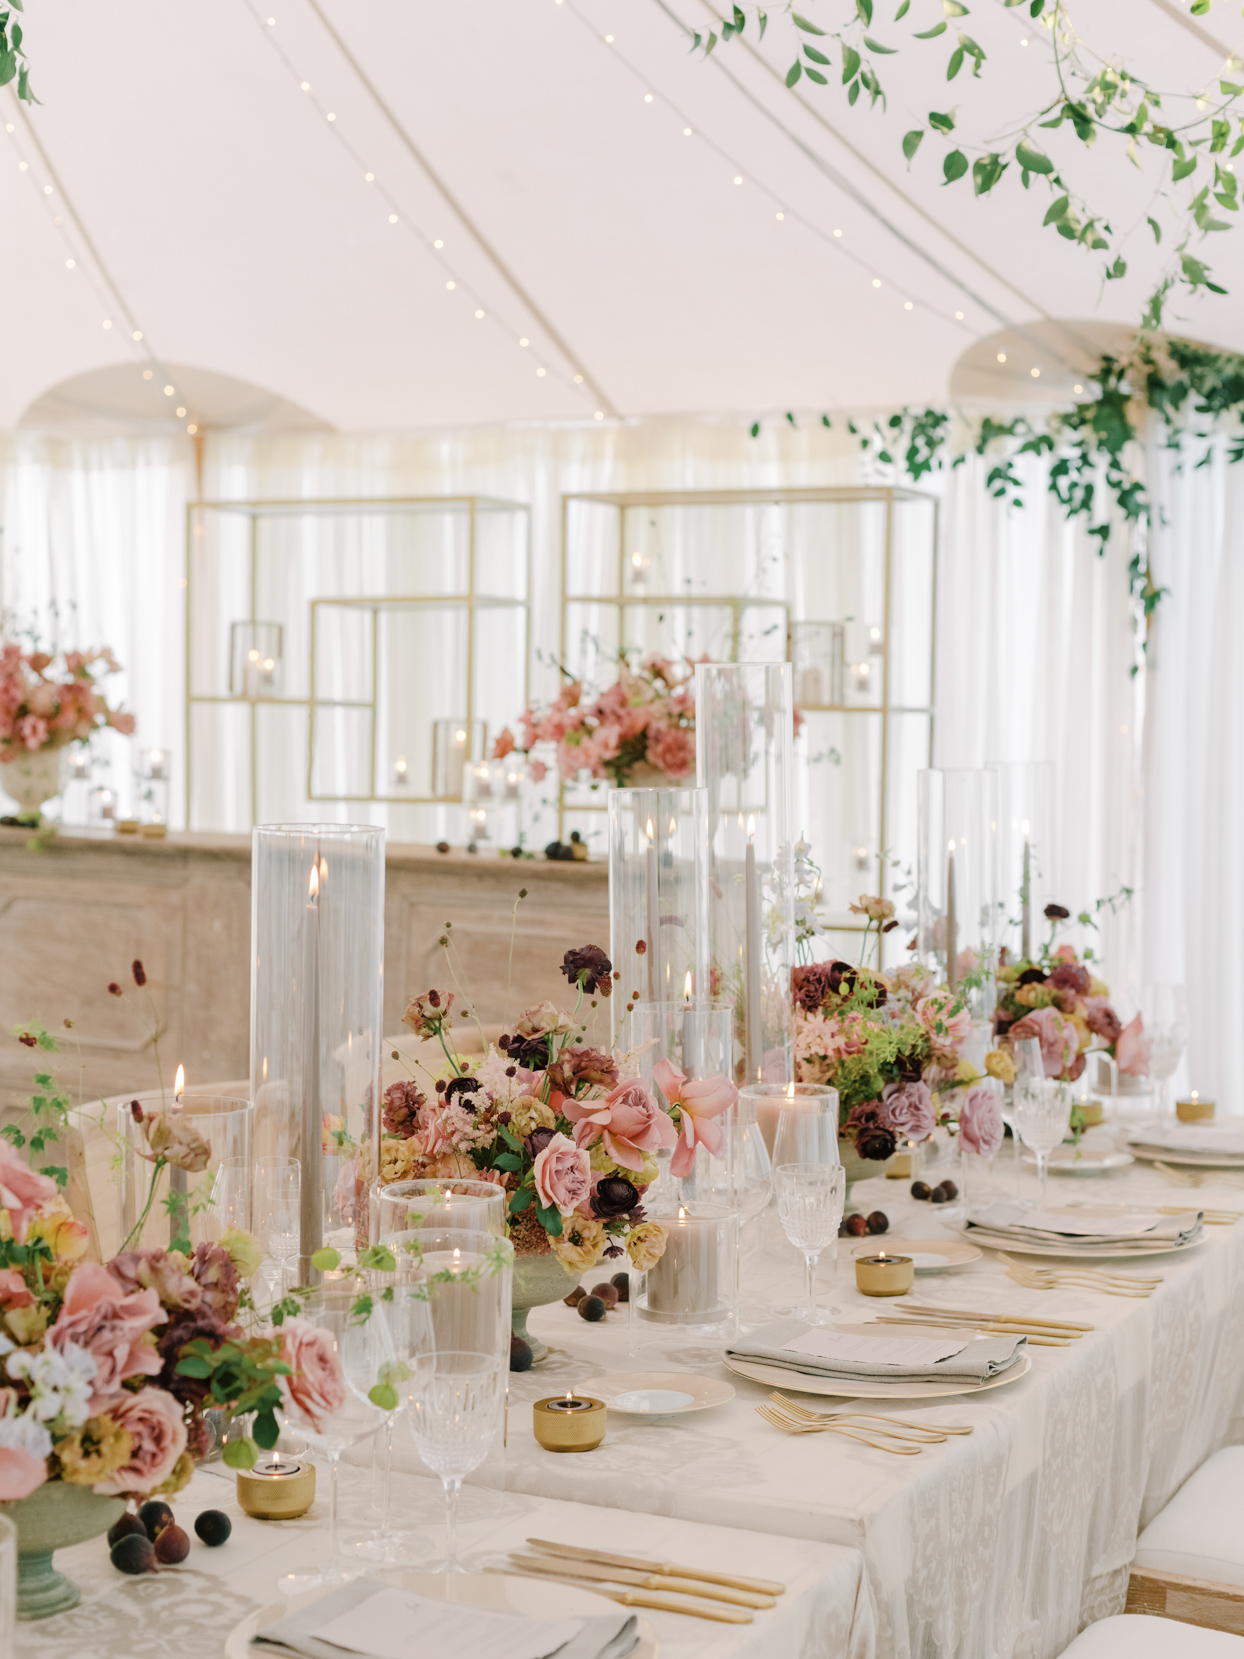 blush toned floral centerpieces with tapper candles